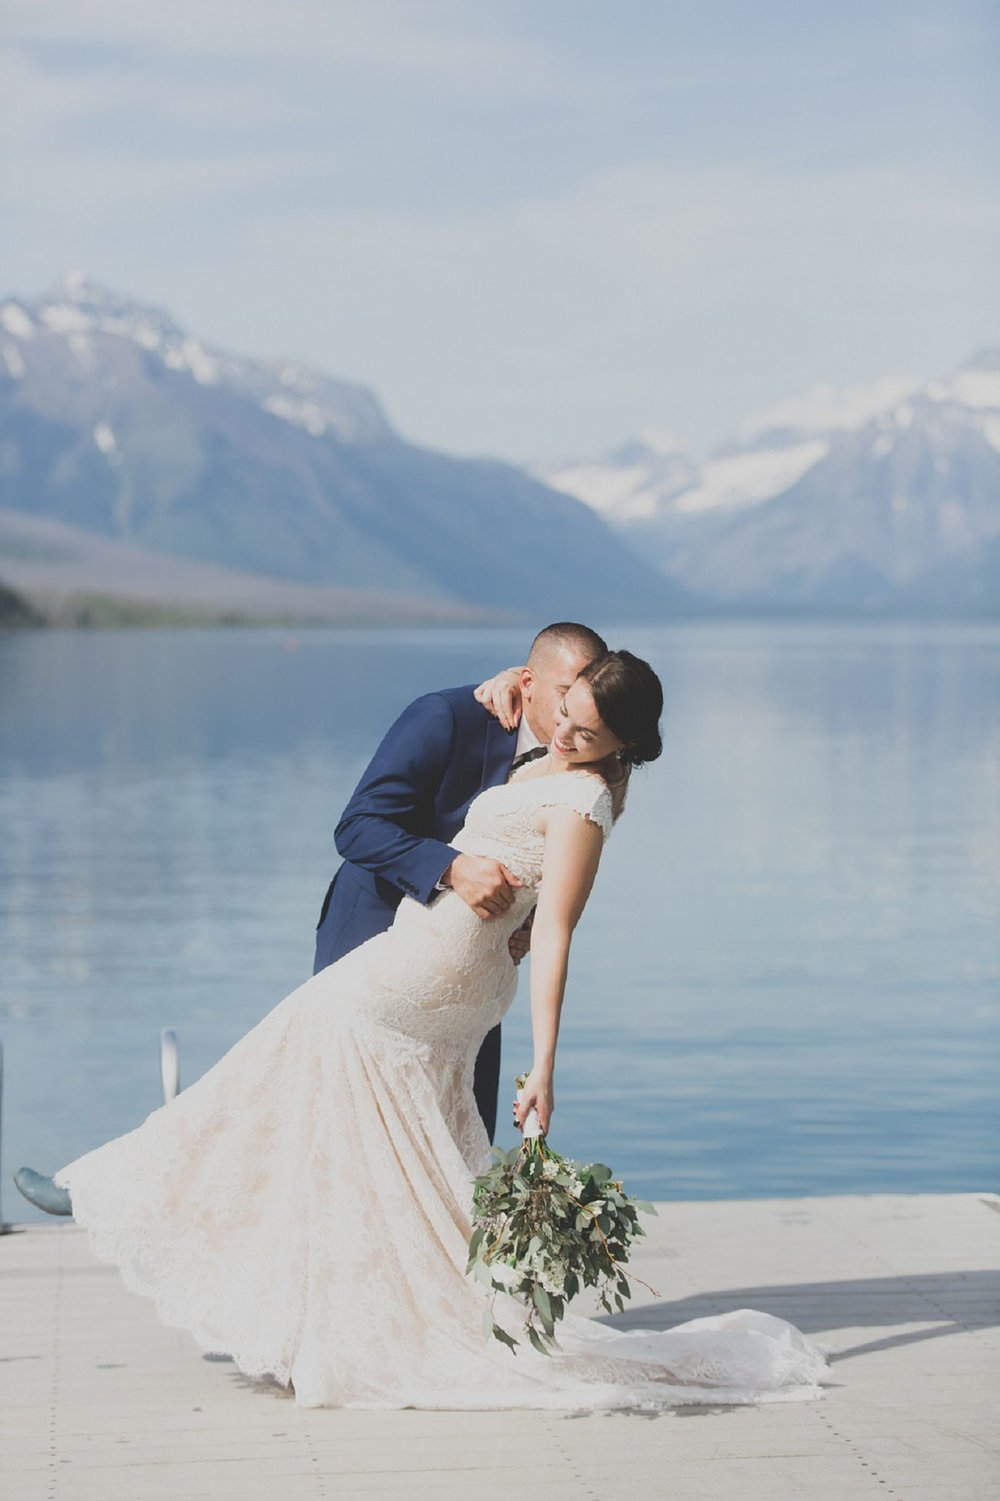 Jennifer_Mooney_Photo_Glacier_Park_Weddings_Elopement_00062.jpg